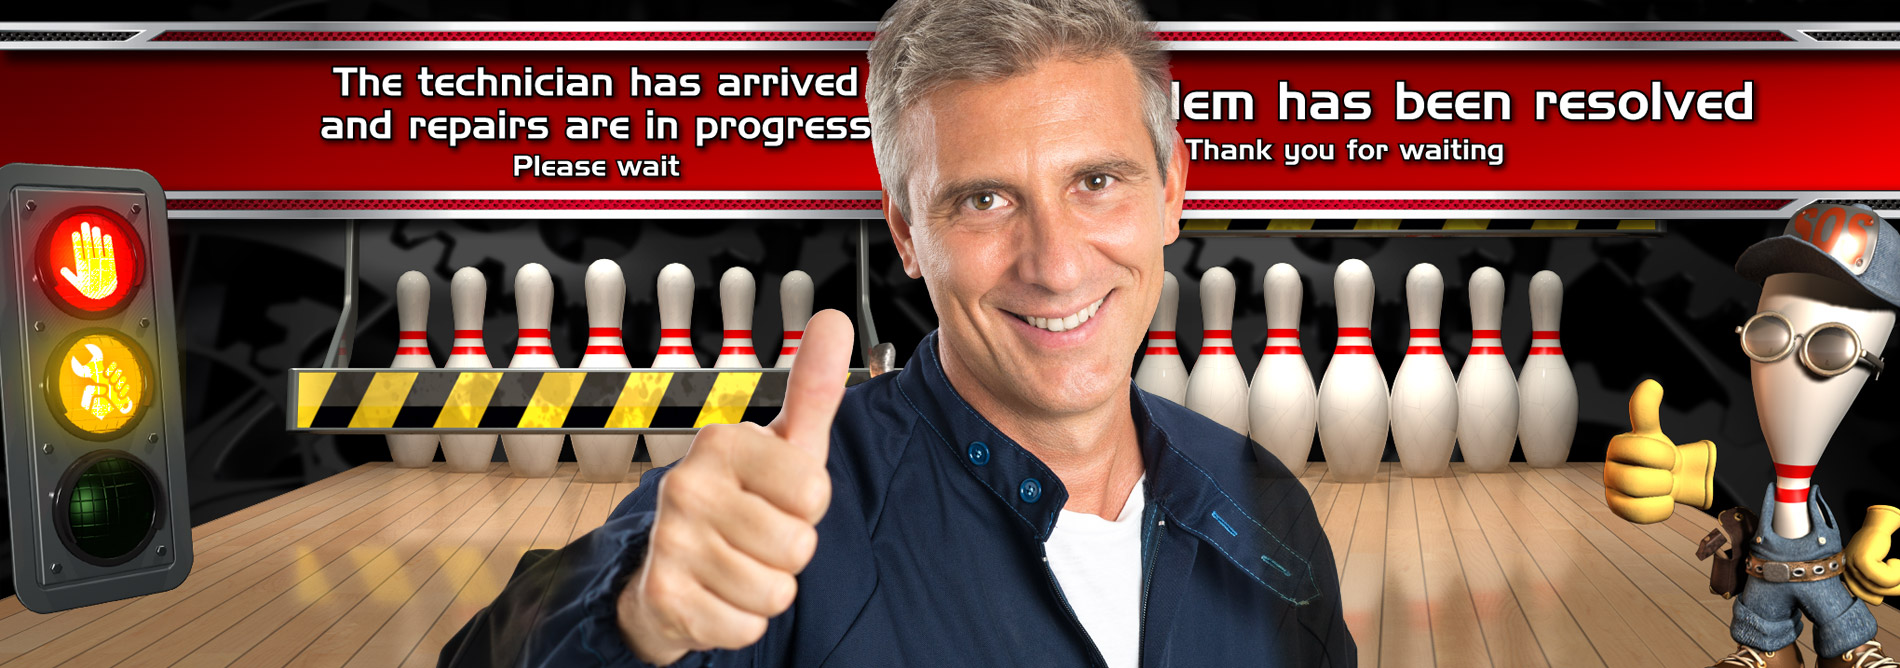 Bowling-QubicaAMF-score-Trouble-call-system-TCS-banner.jpg